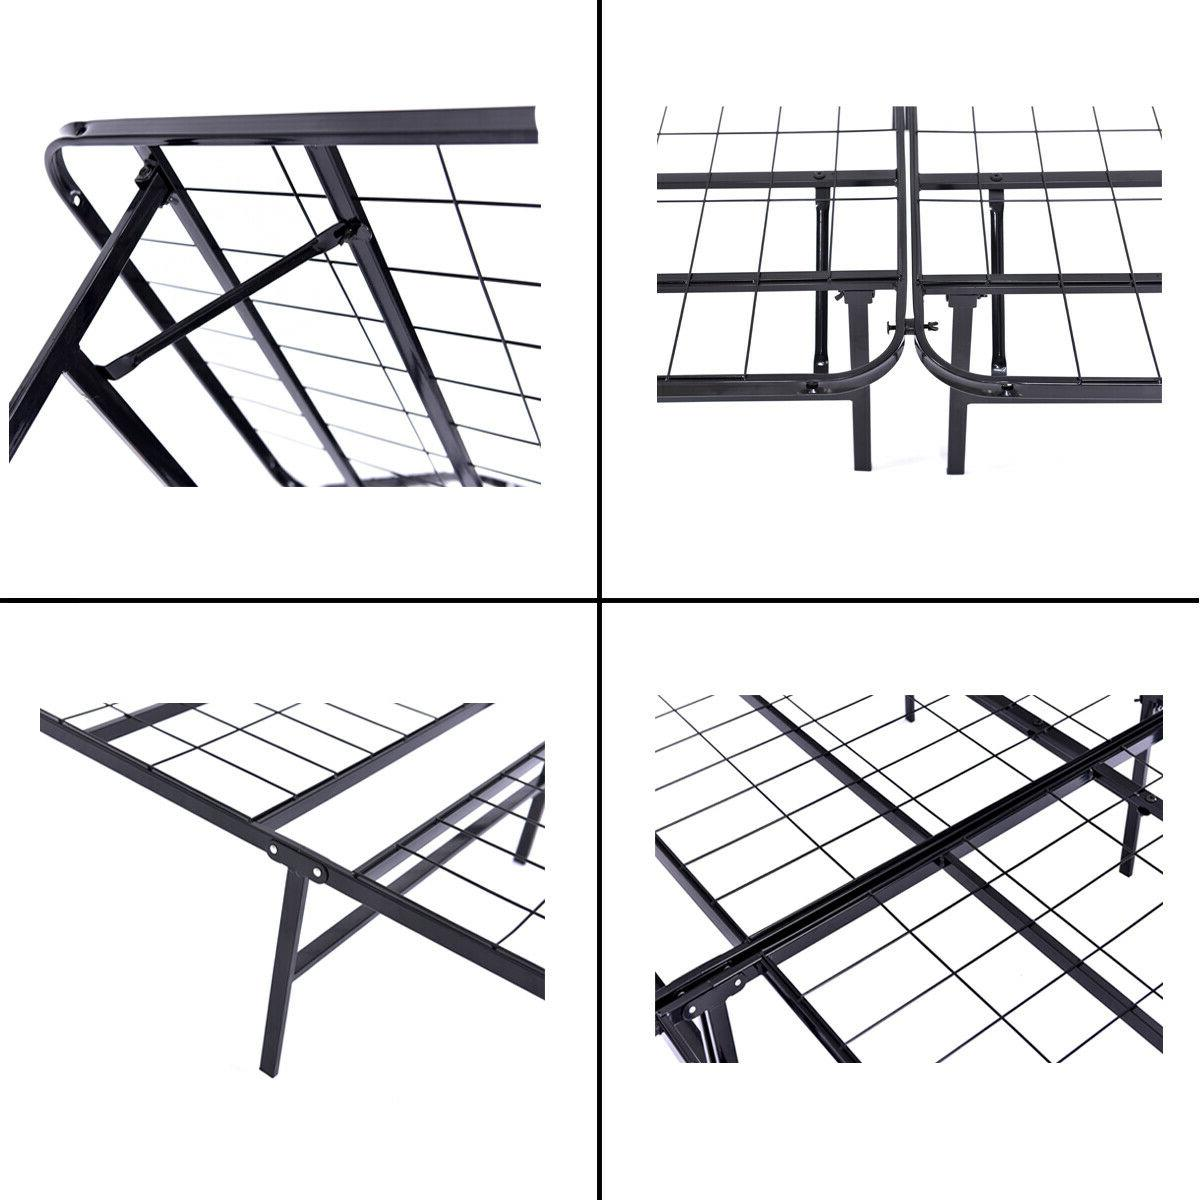 14/16/18 Bed Frame Slat FoundationTwin/Full/Queen